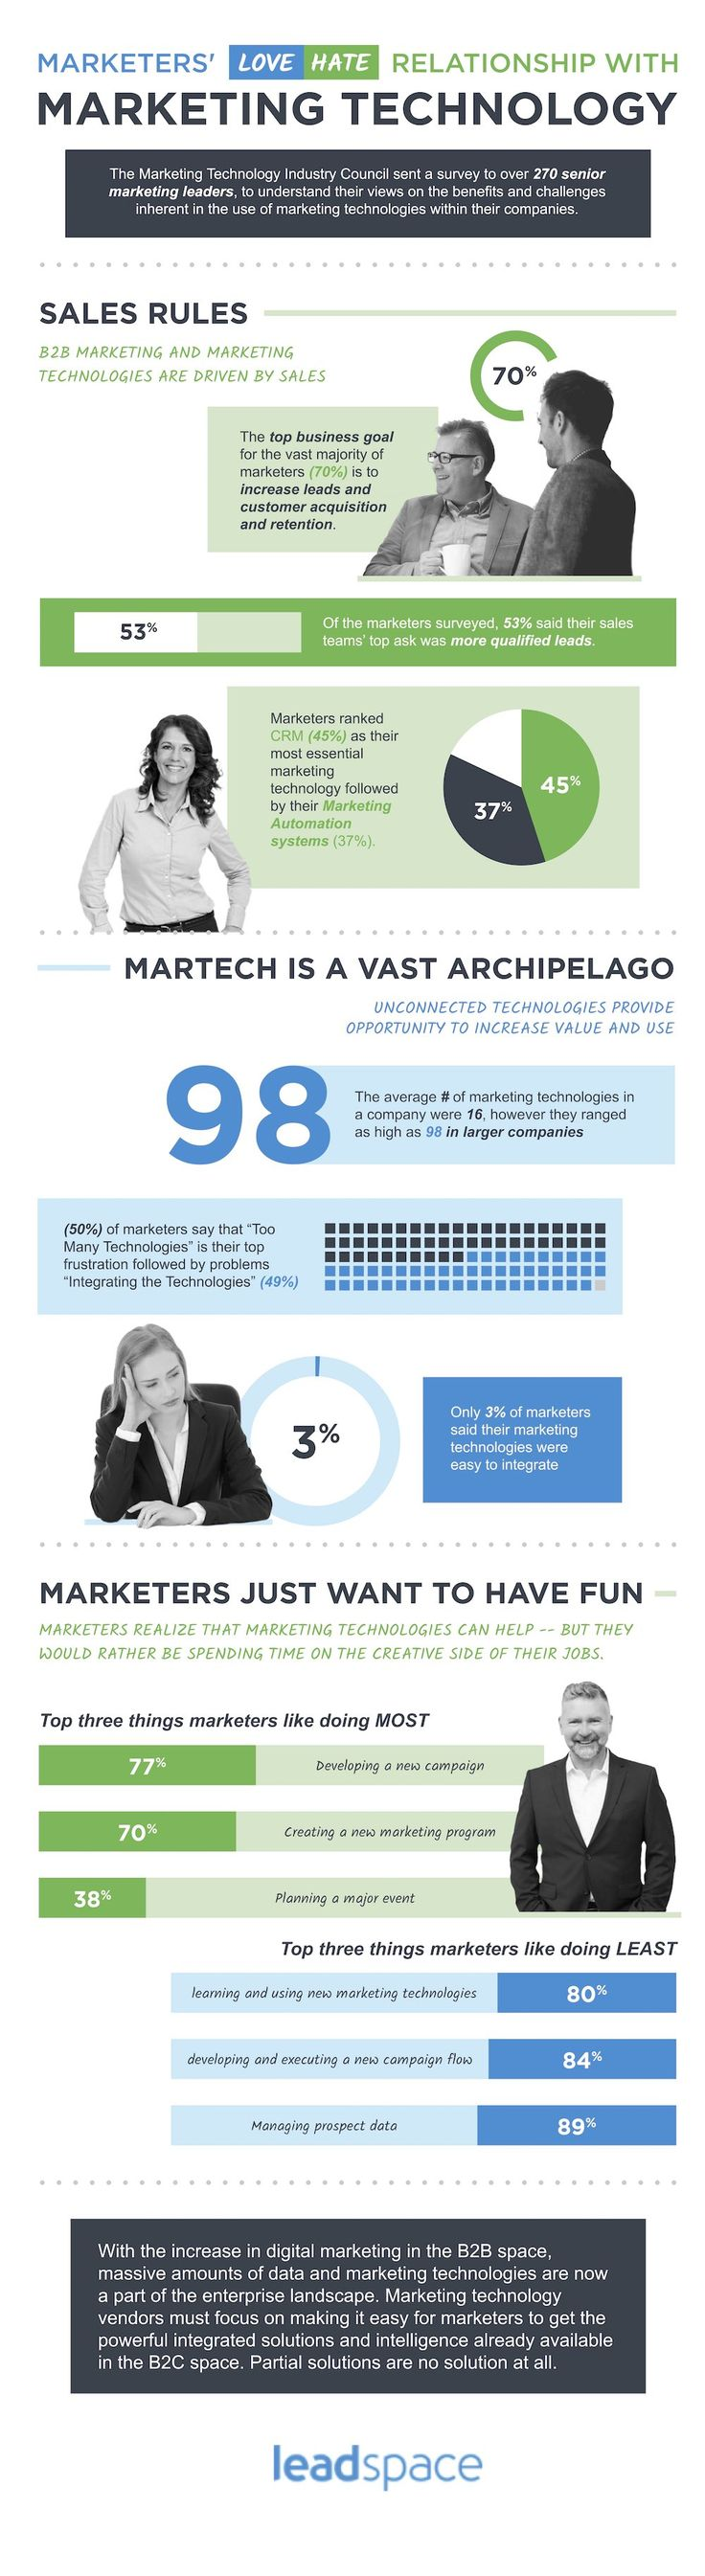 Marketing technologies are essential to B2B marketers, with B2B firms having adopted 16 technologies on average, and lead generation being the top use for martech. See more from this study.